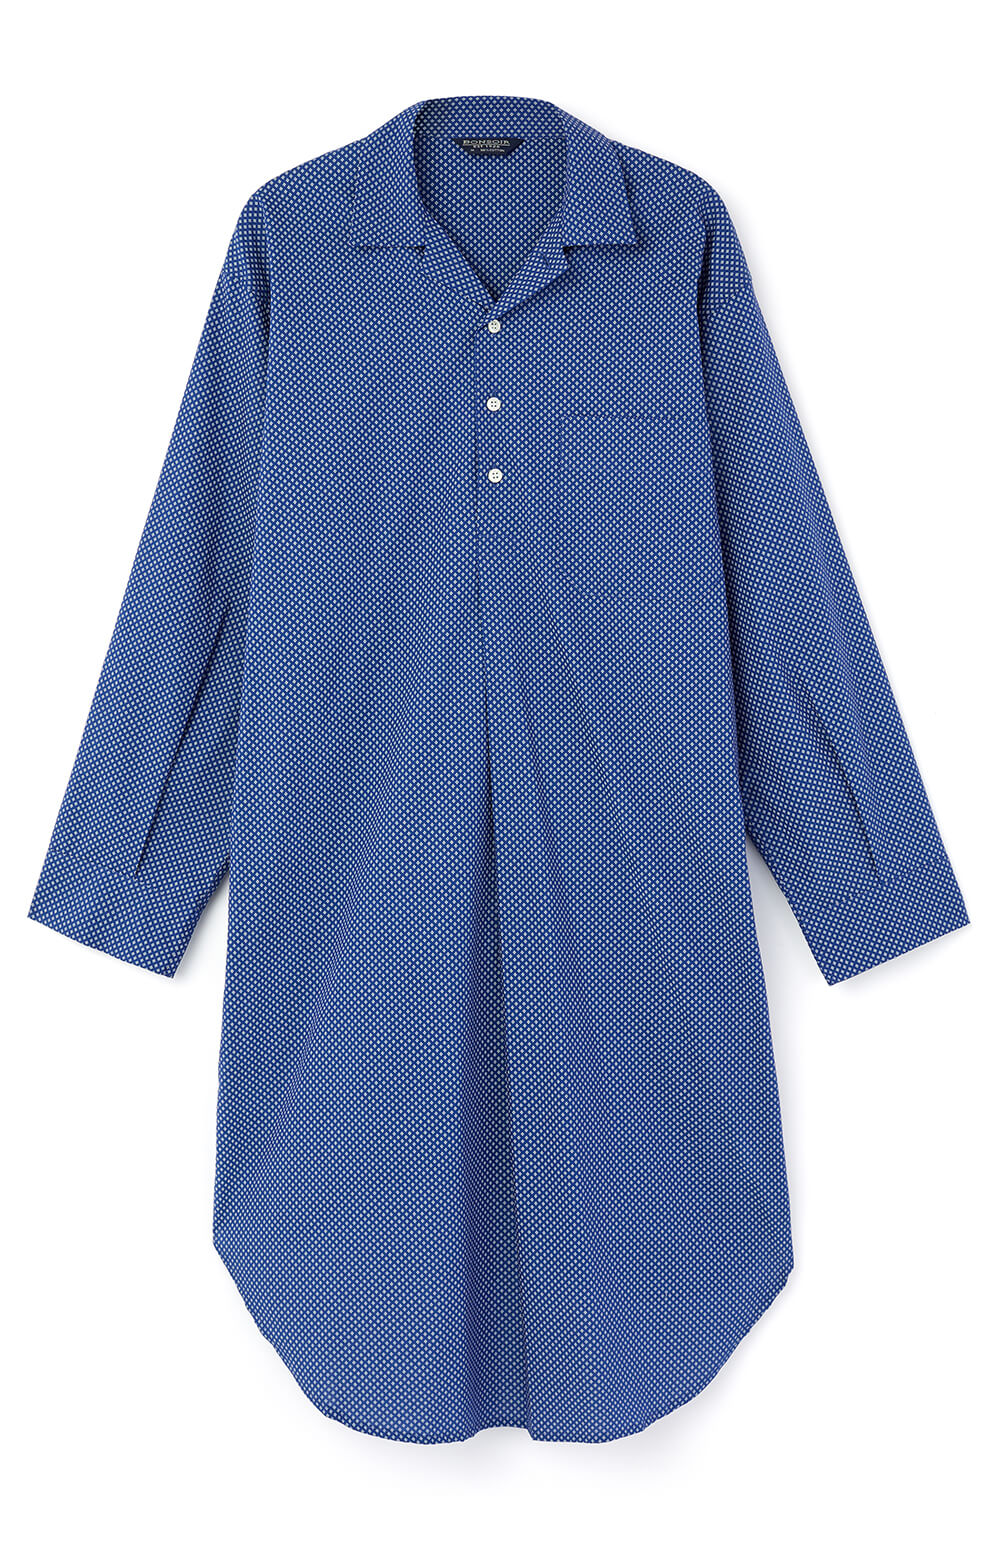 Heritage Nightshirt (amnm) - Apollo